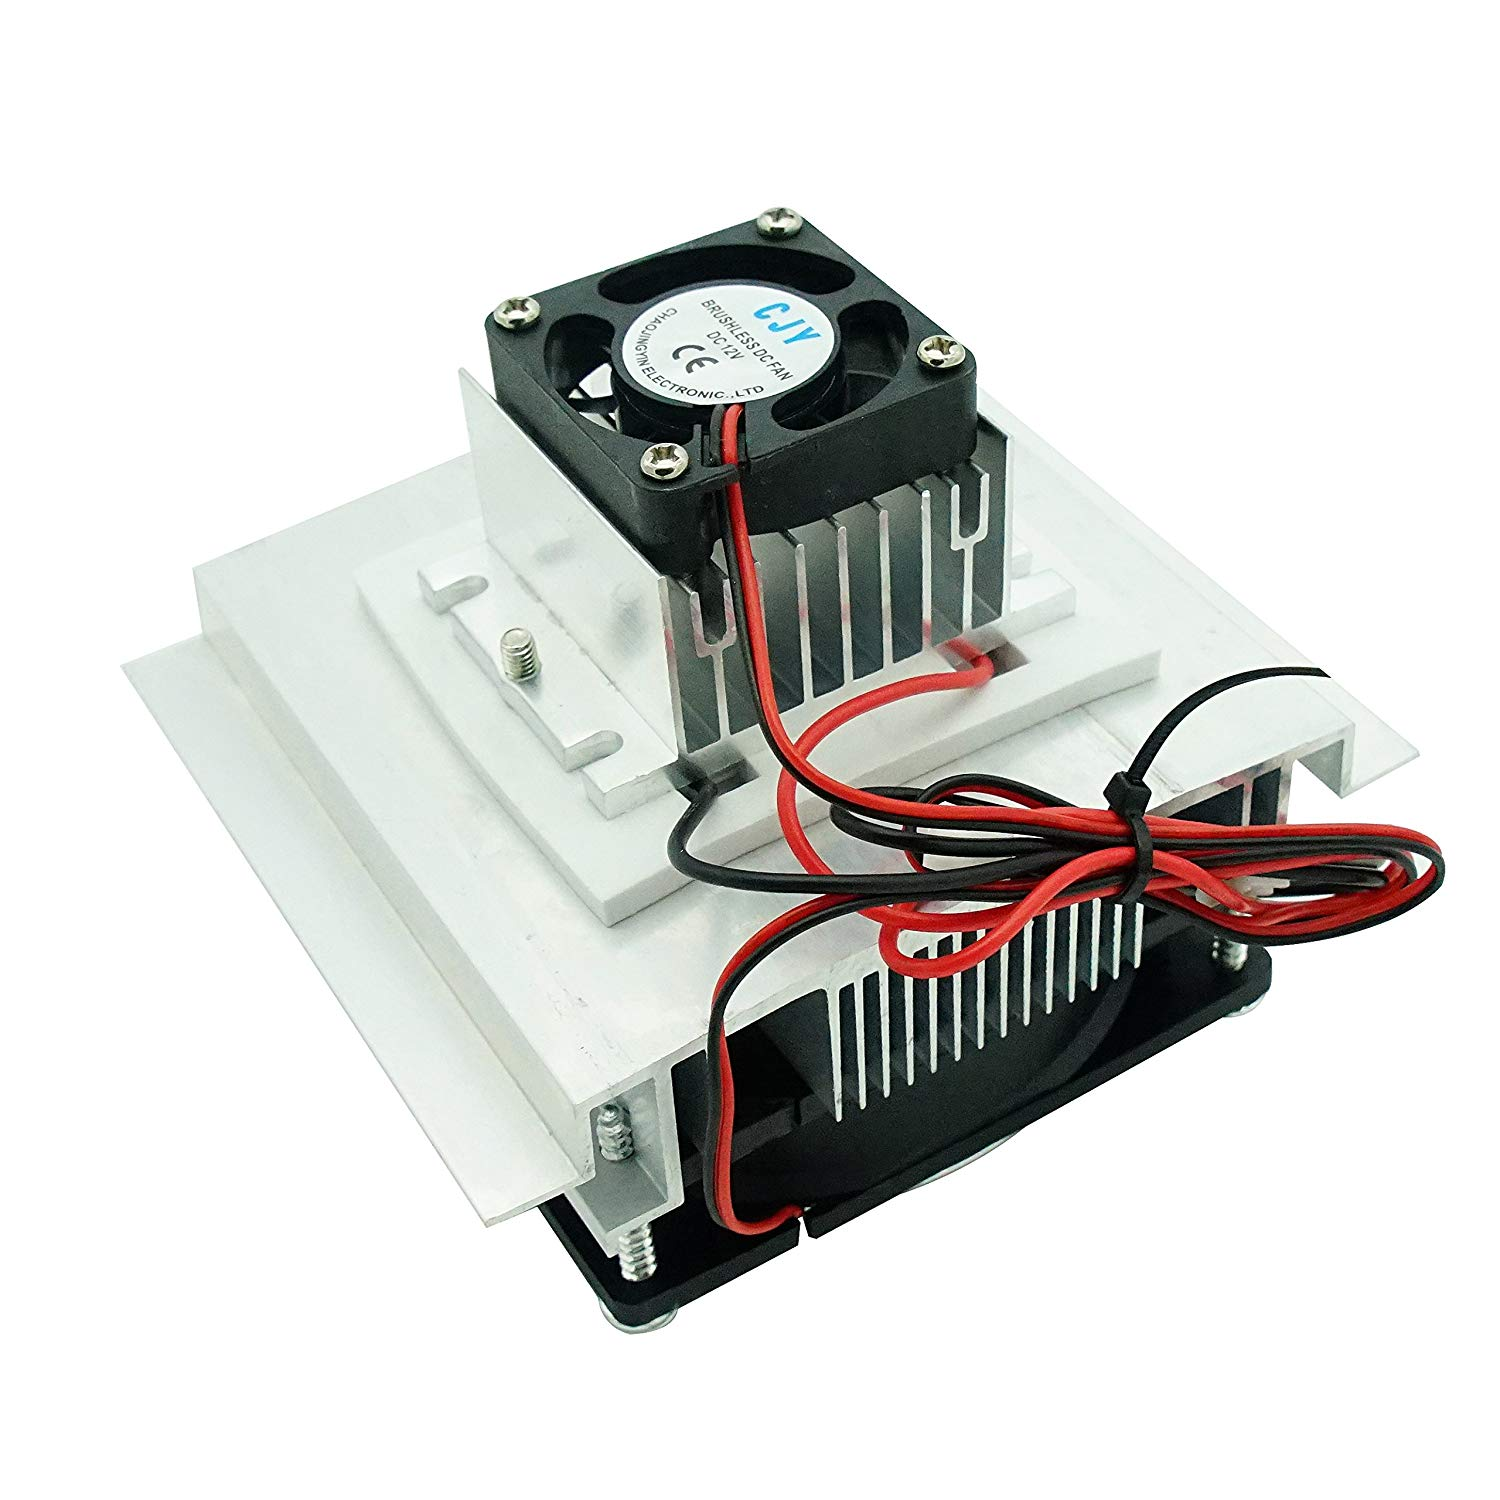 Puuli TEC1-12712 12V 12A 110W 4040mm Thermoelectric Cooler Heatsink Module Cooling Plate